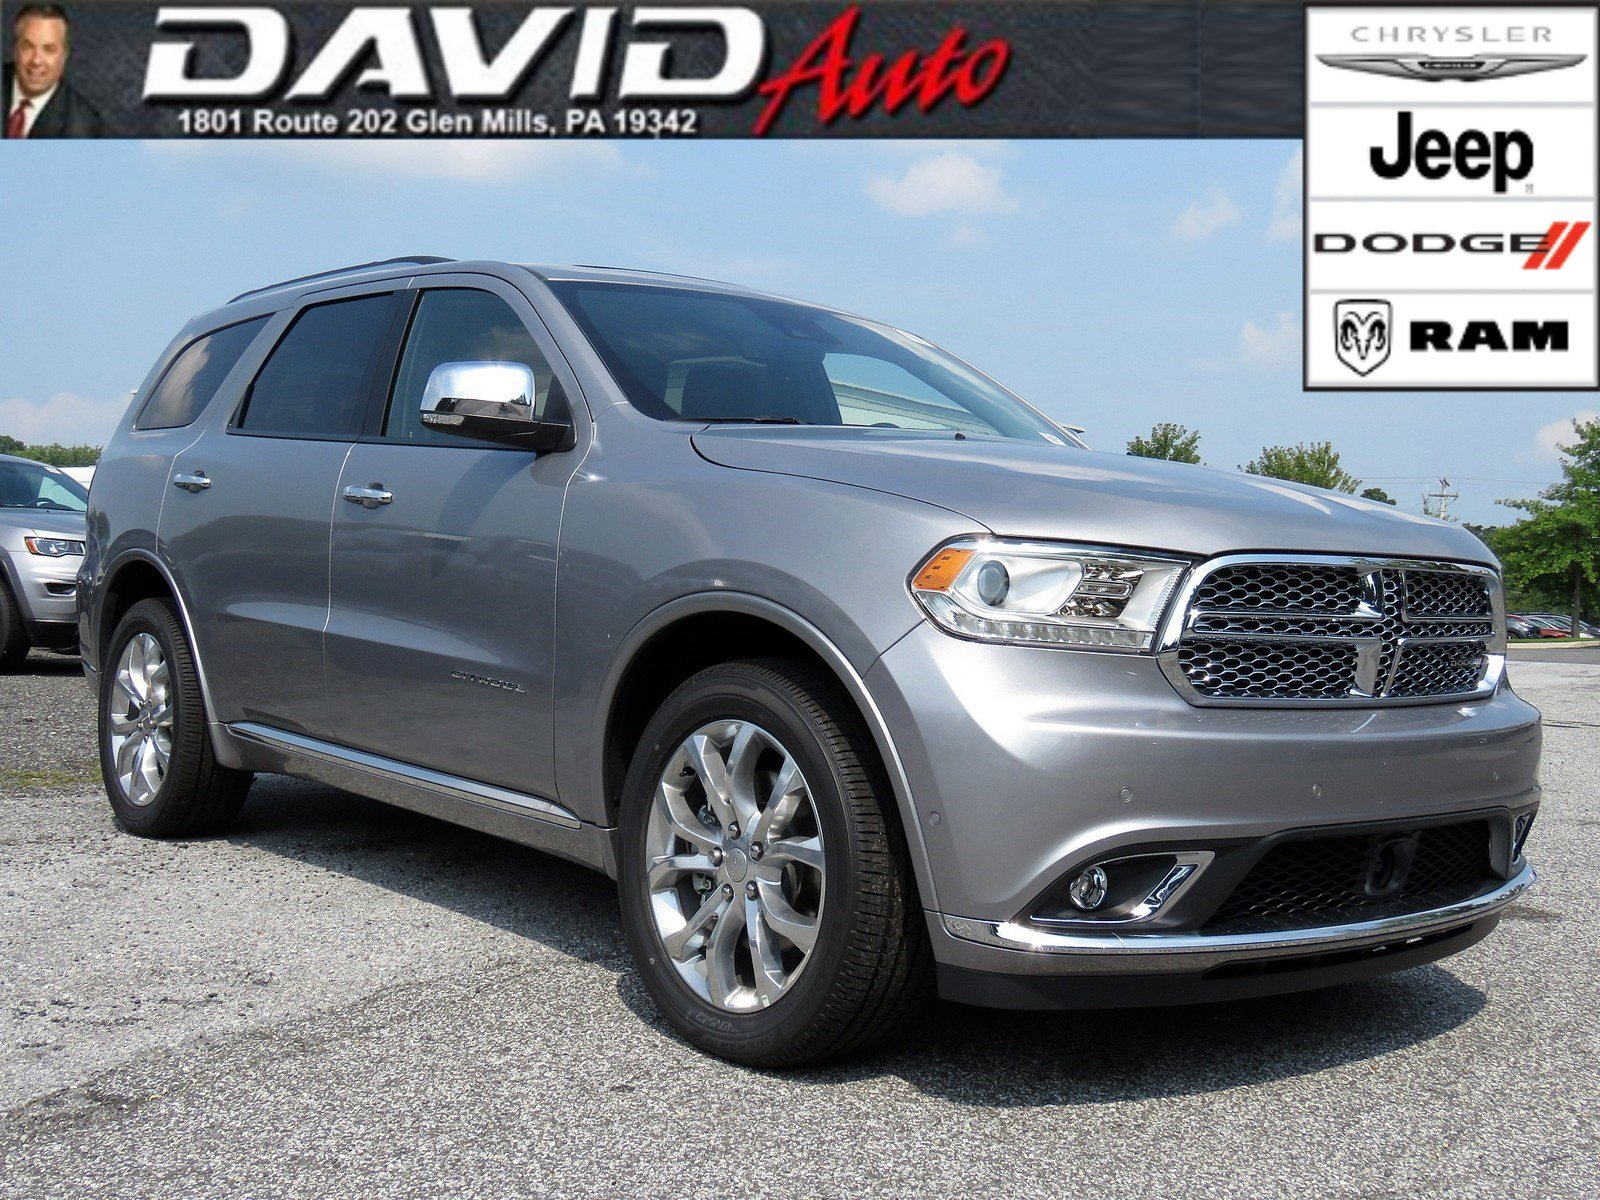 New 2018 DODGE Durango Citadel Sport Utility in Glen Mills D